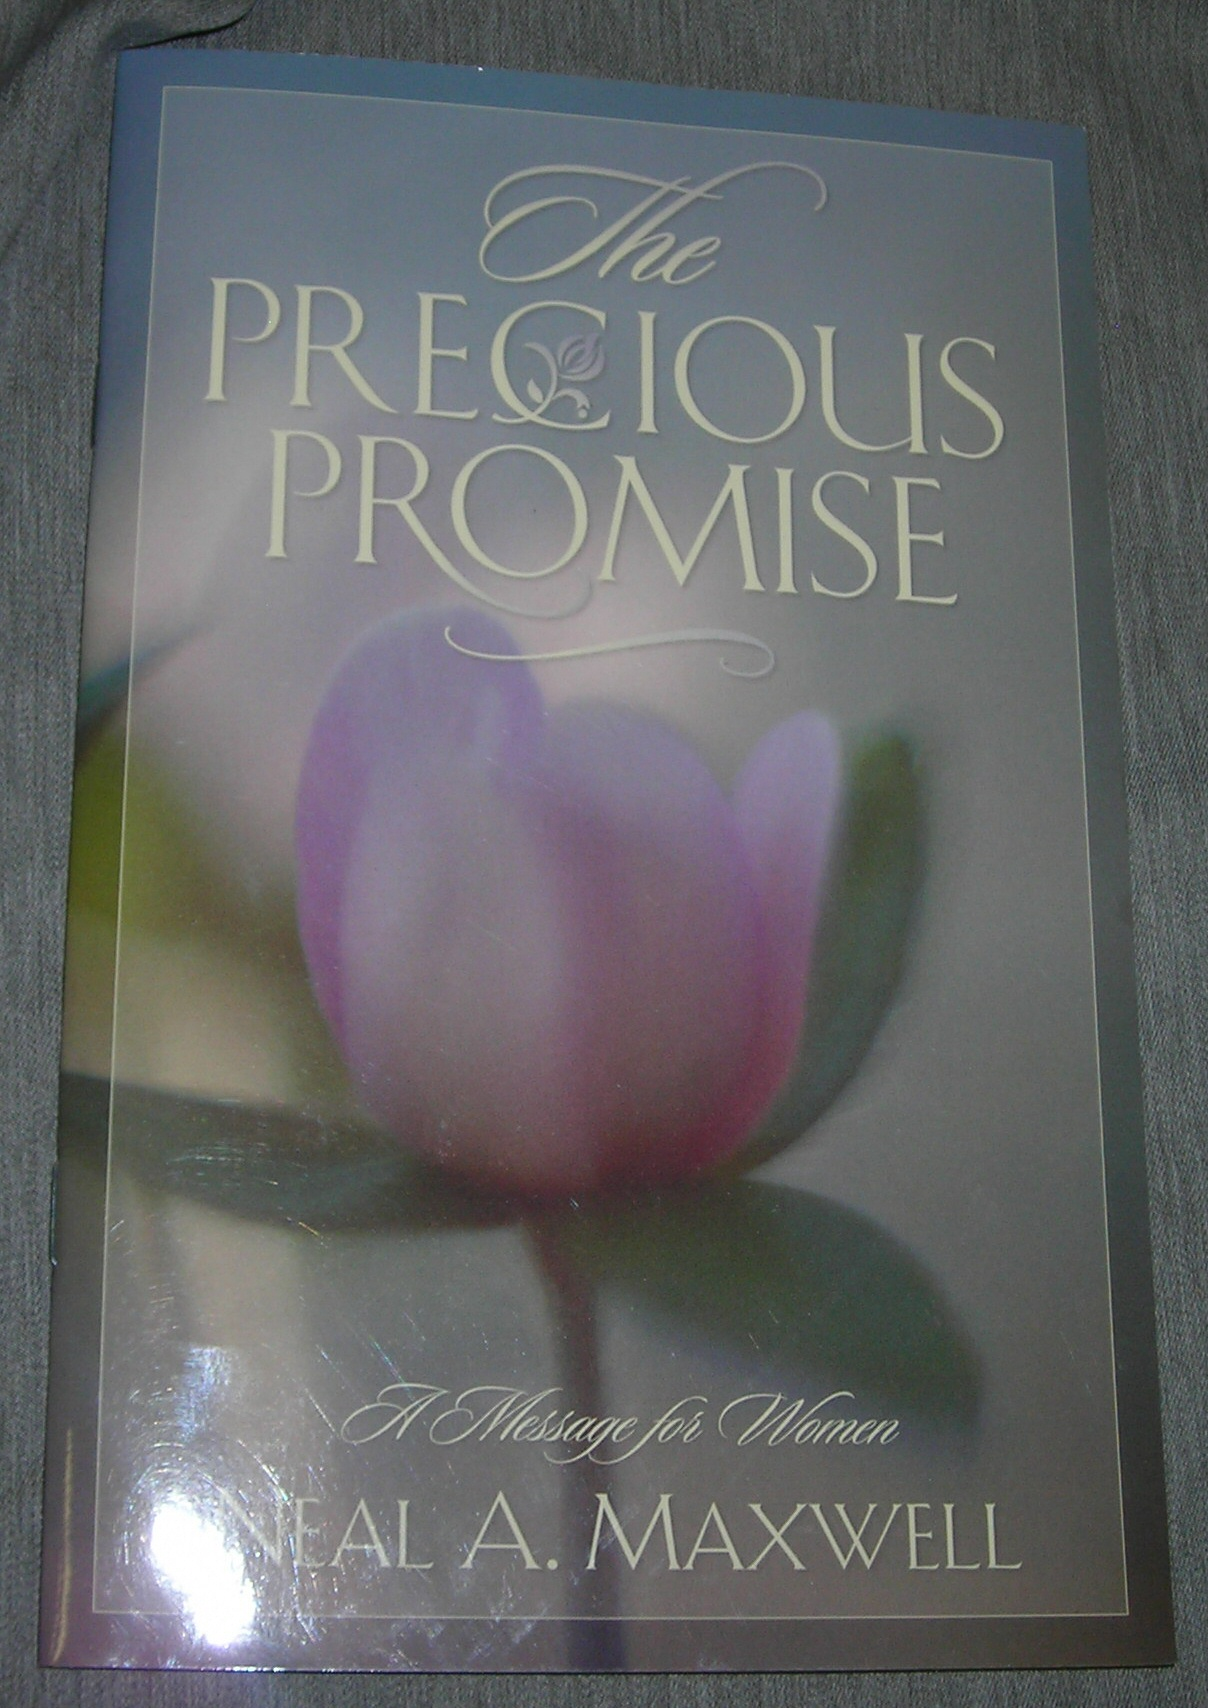 THE PRECIOUS PROMISE -  A message for women, Maxwell, Neal A